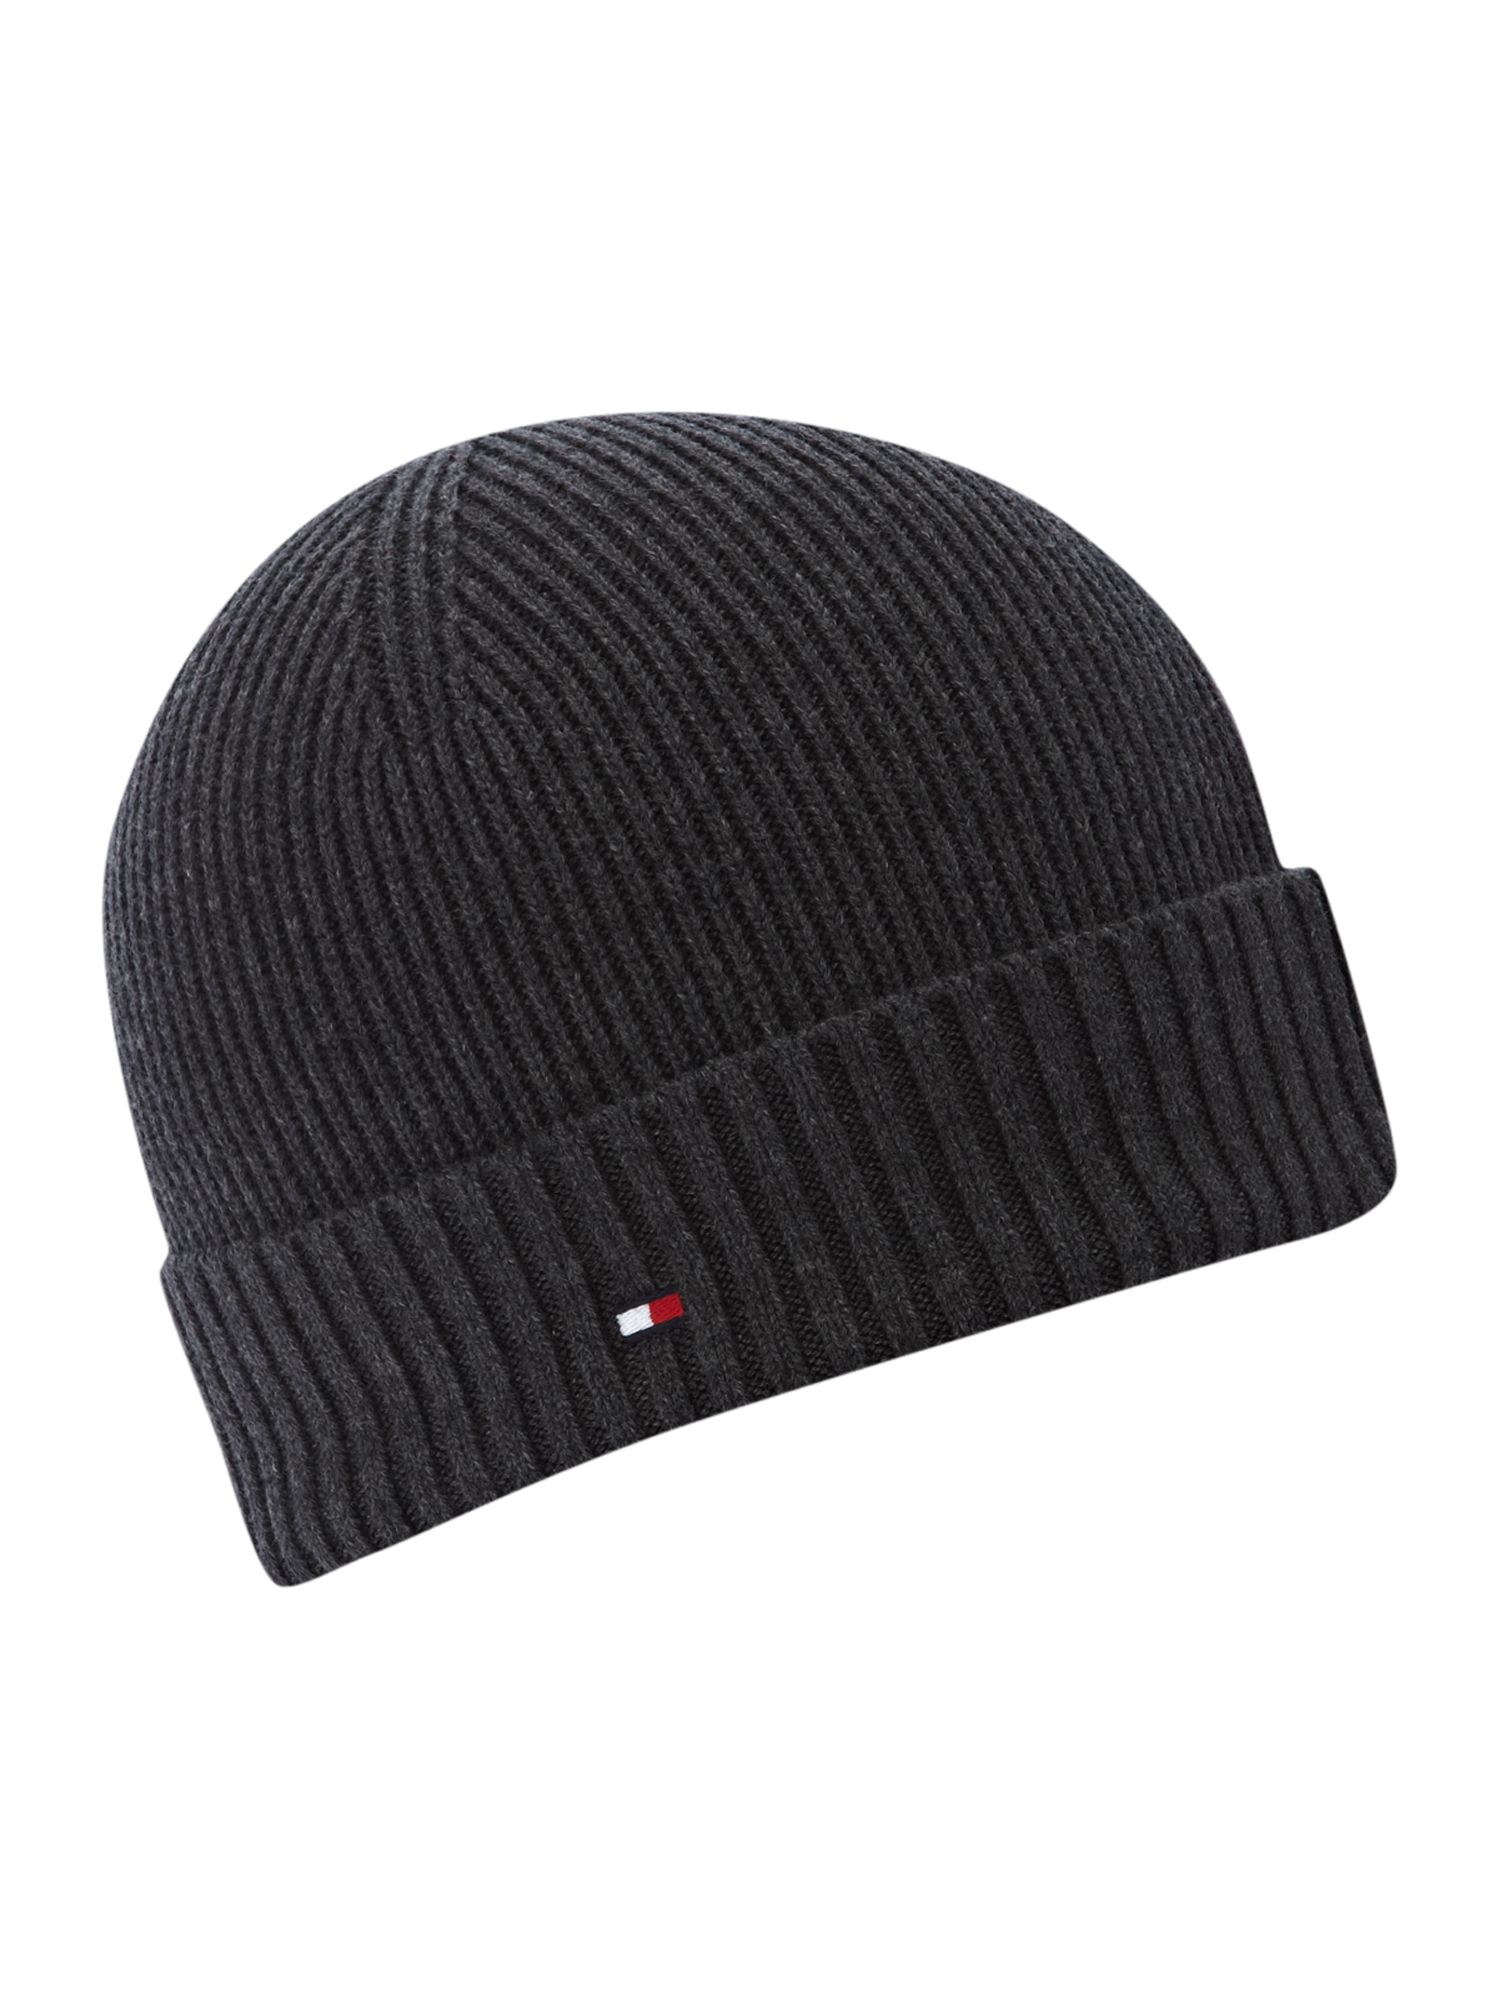 Tommy Hilfiger Beanie Hat In Gray For Men Charcoal Lyst